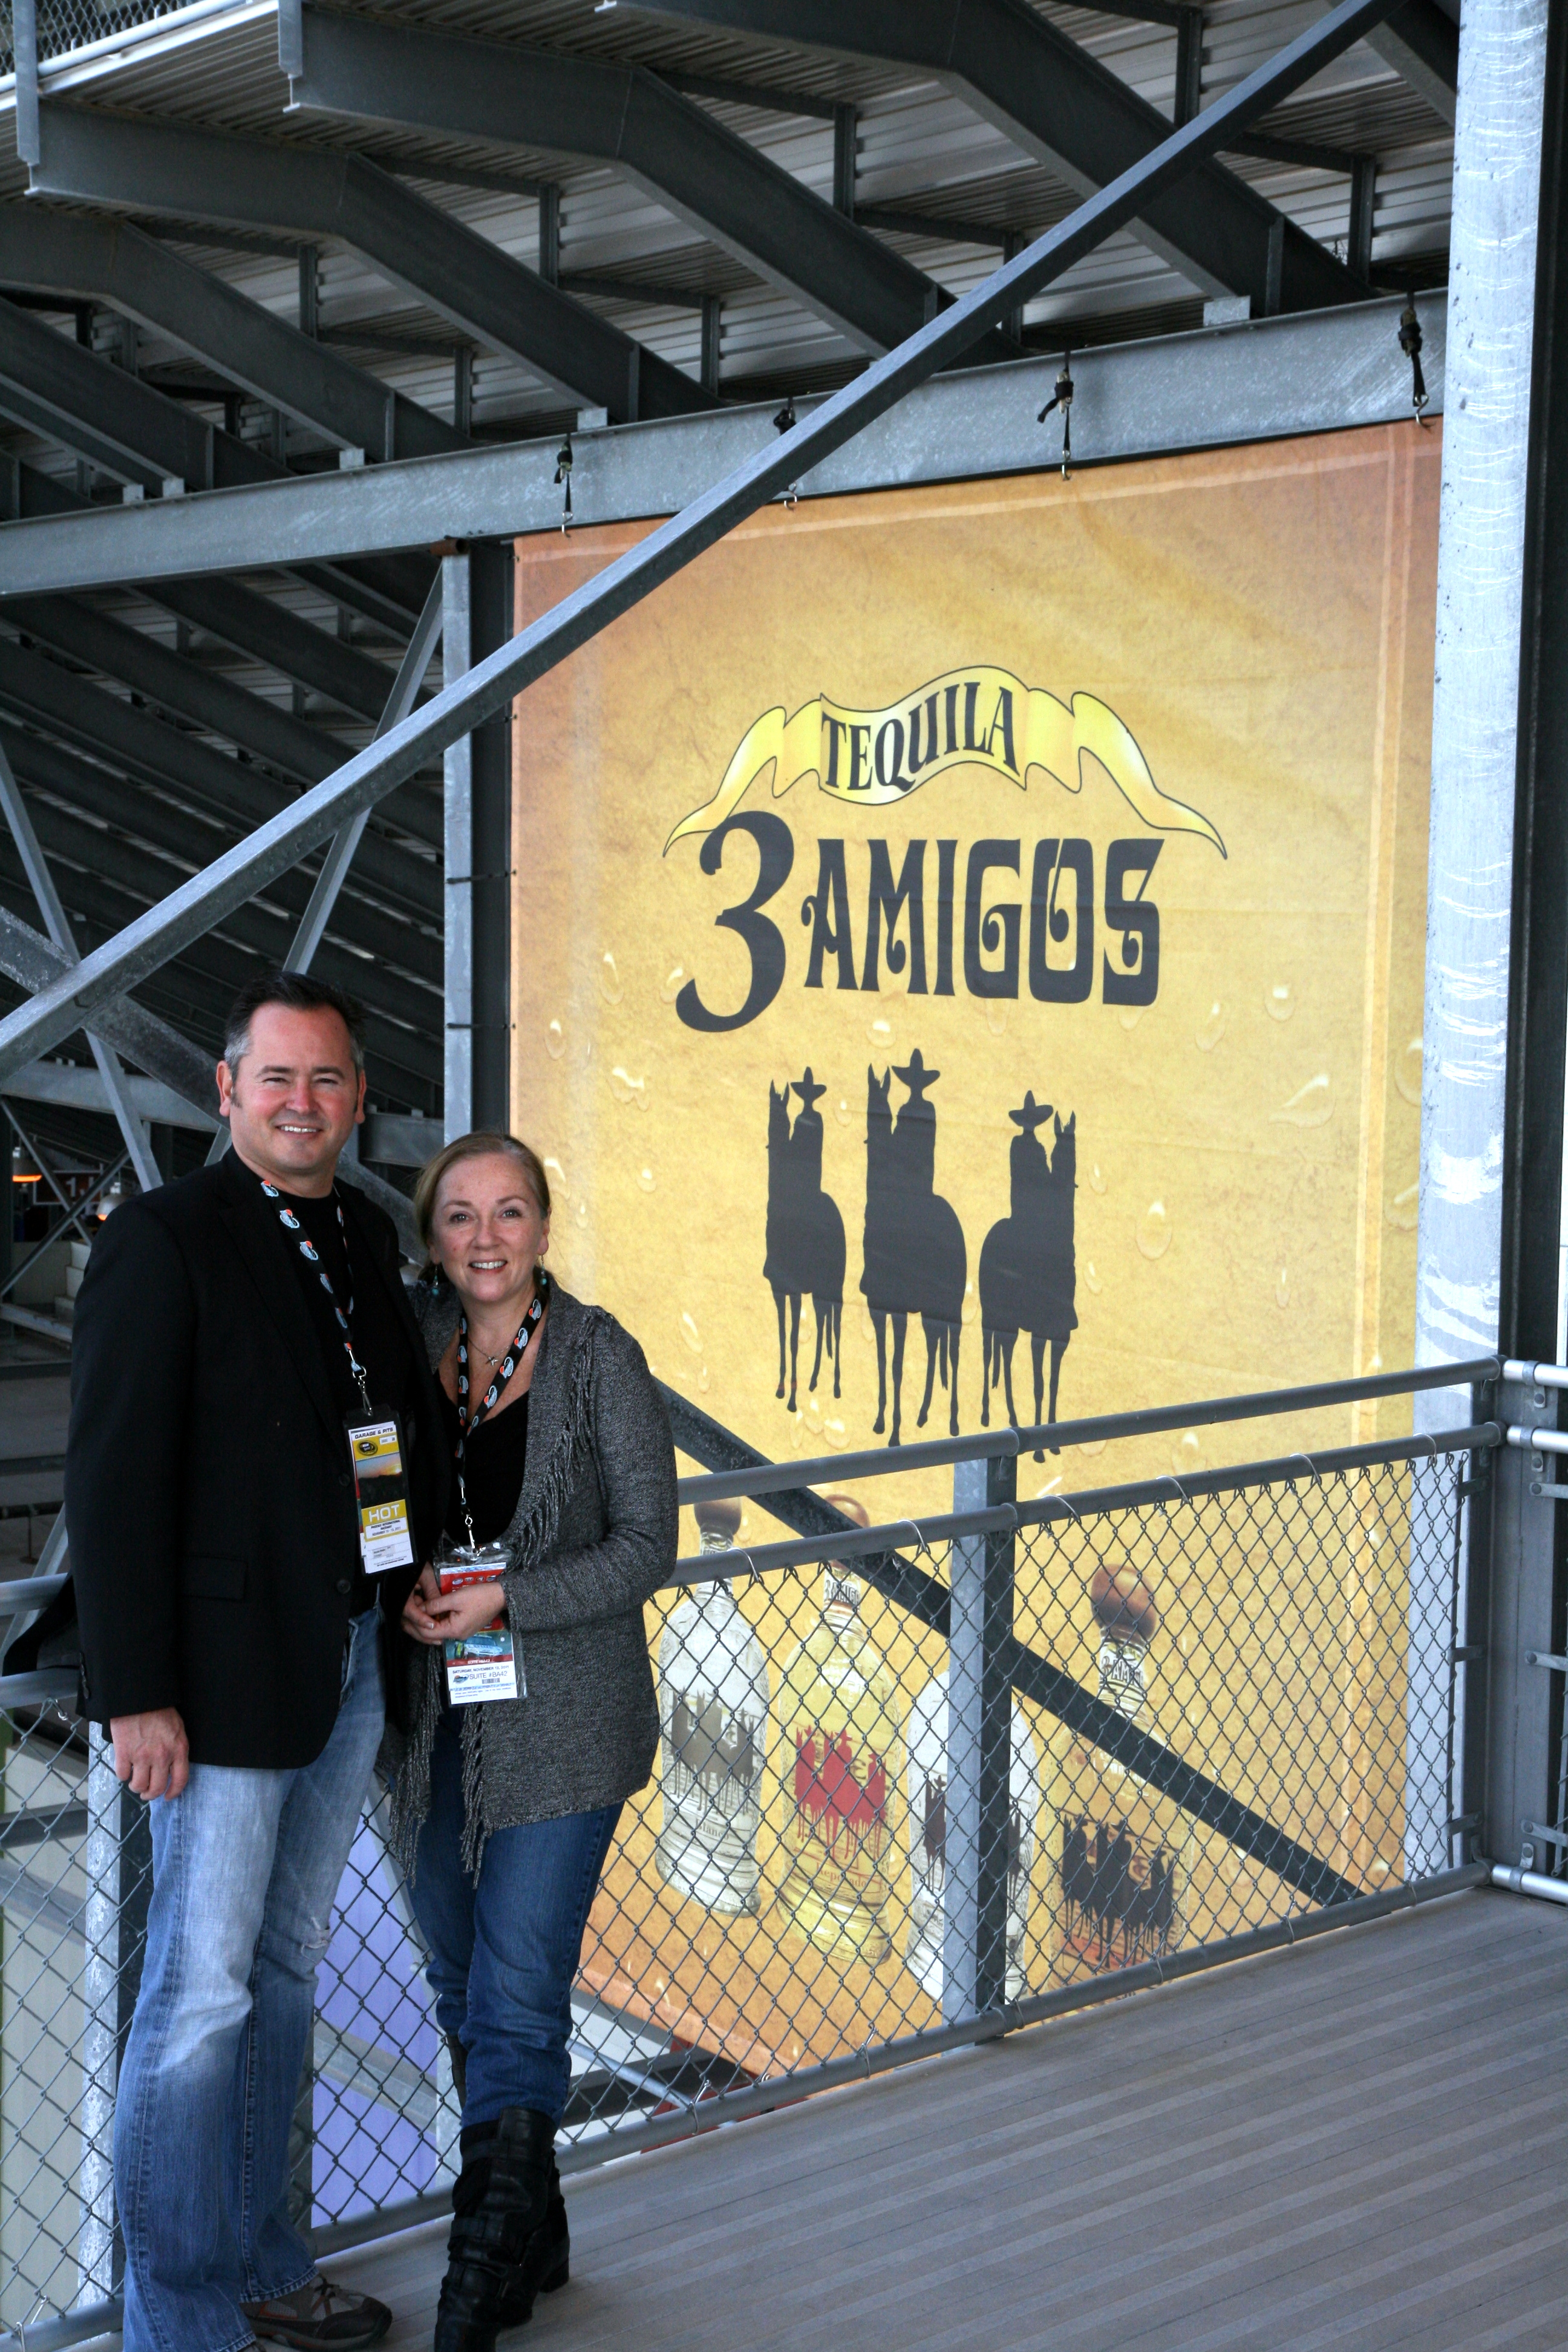 Smoke & Anitra at PIR on way to 3 Amigos stage with Stealing Angels